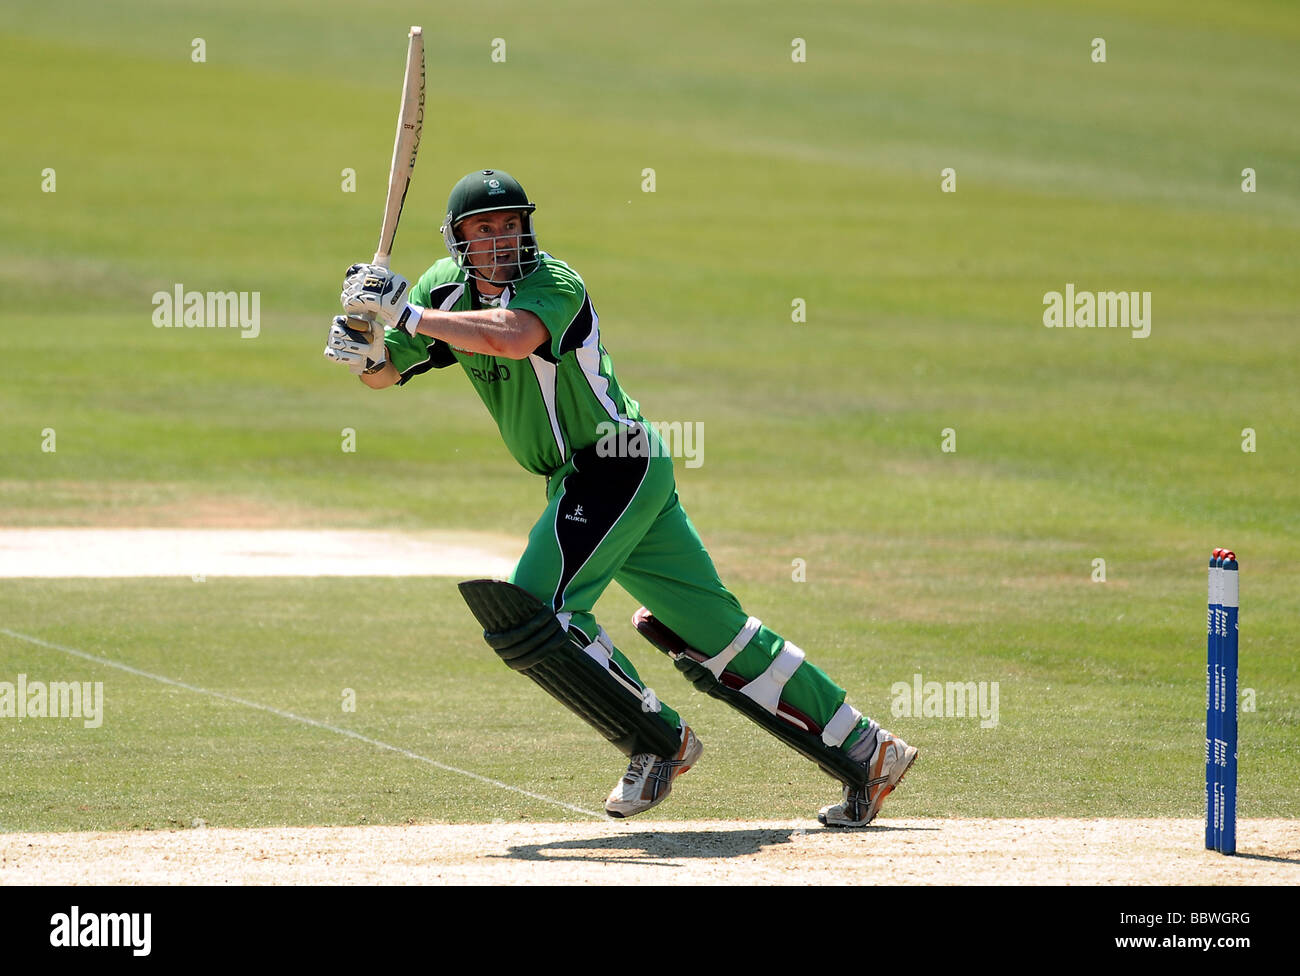 ANDRE BOTHA IRELAND V WEST INDIES THE OVAL LONDON ENGLAND 02 June 2009 - Stock Image